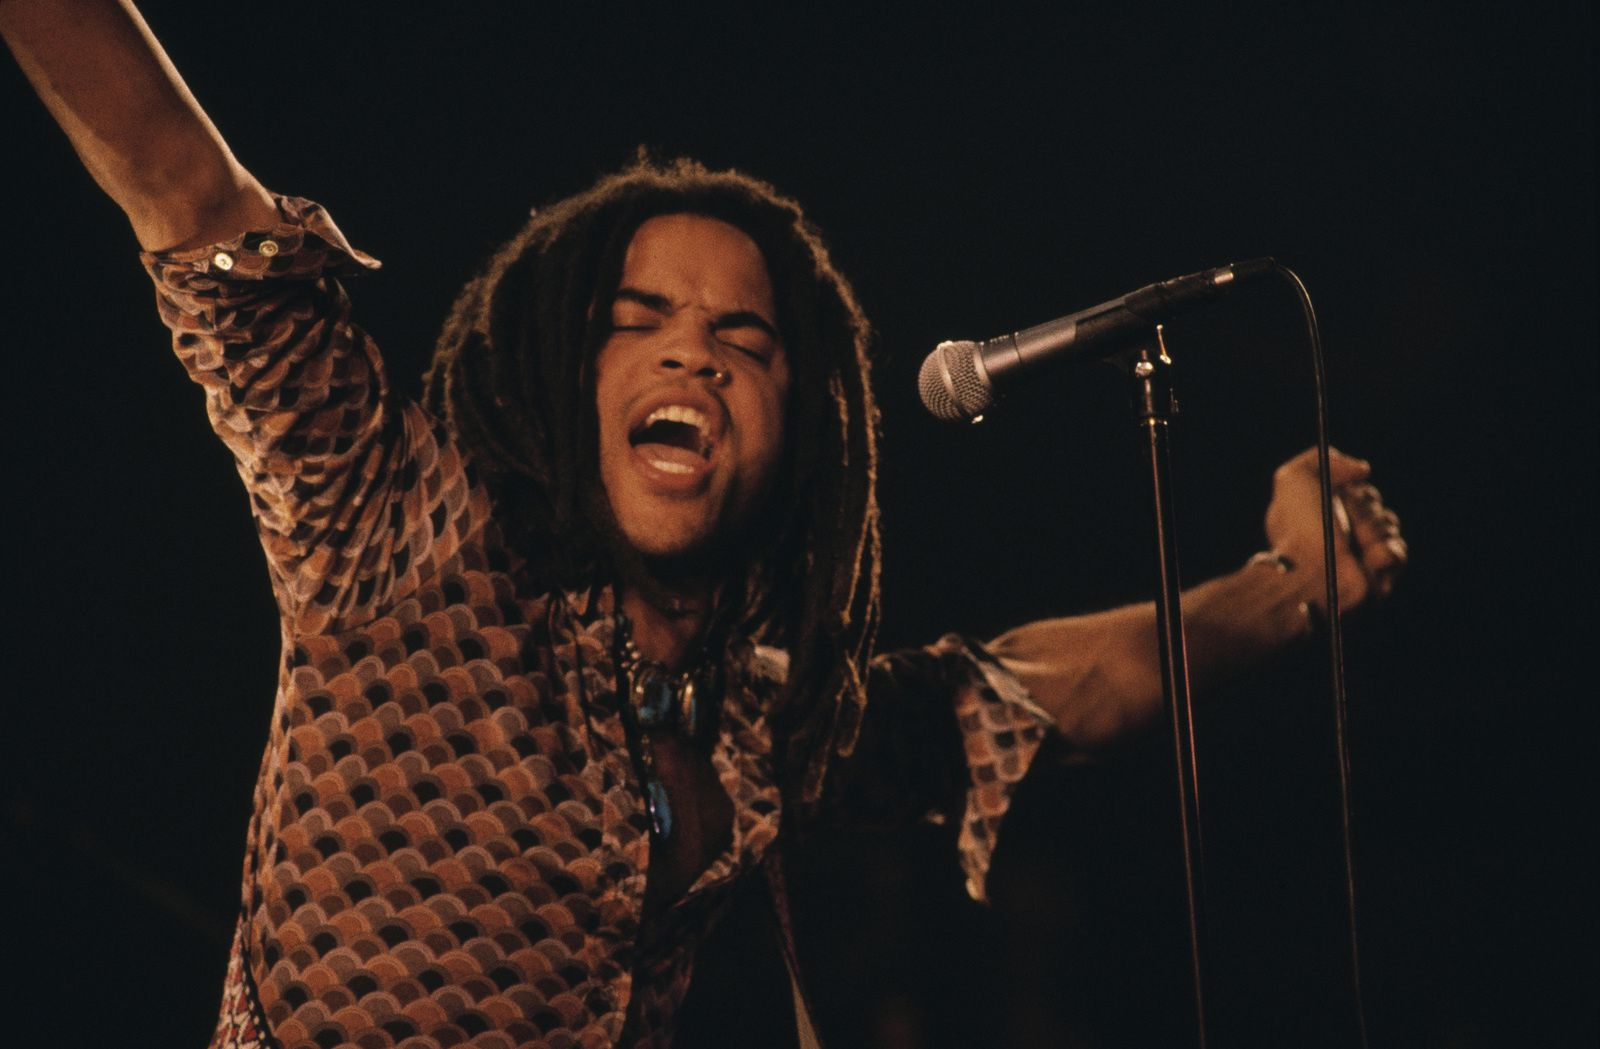 Lenny Kravitz performing on stage, circa 1994. (Photo by Michel Linssen/Redferns/Getty Images)